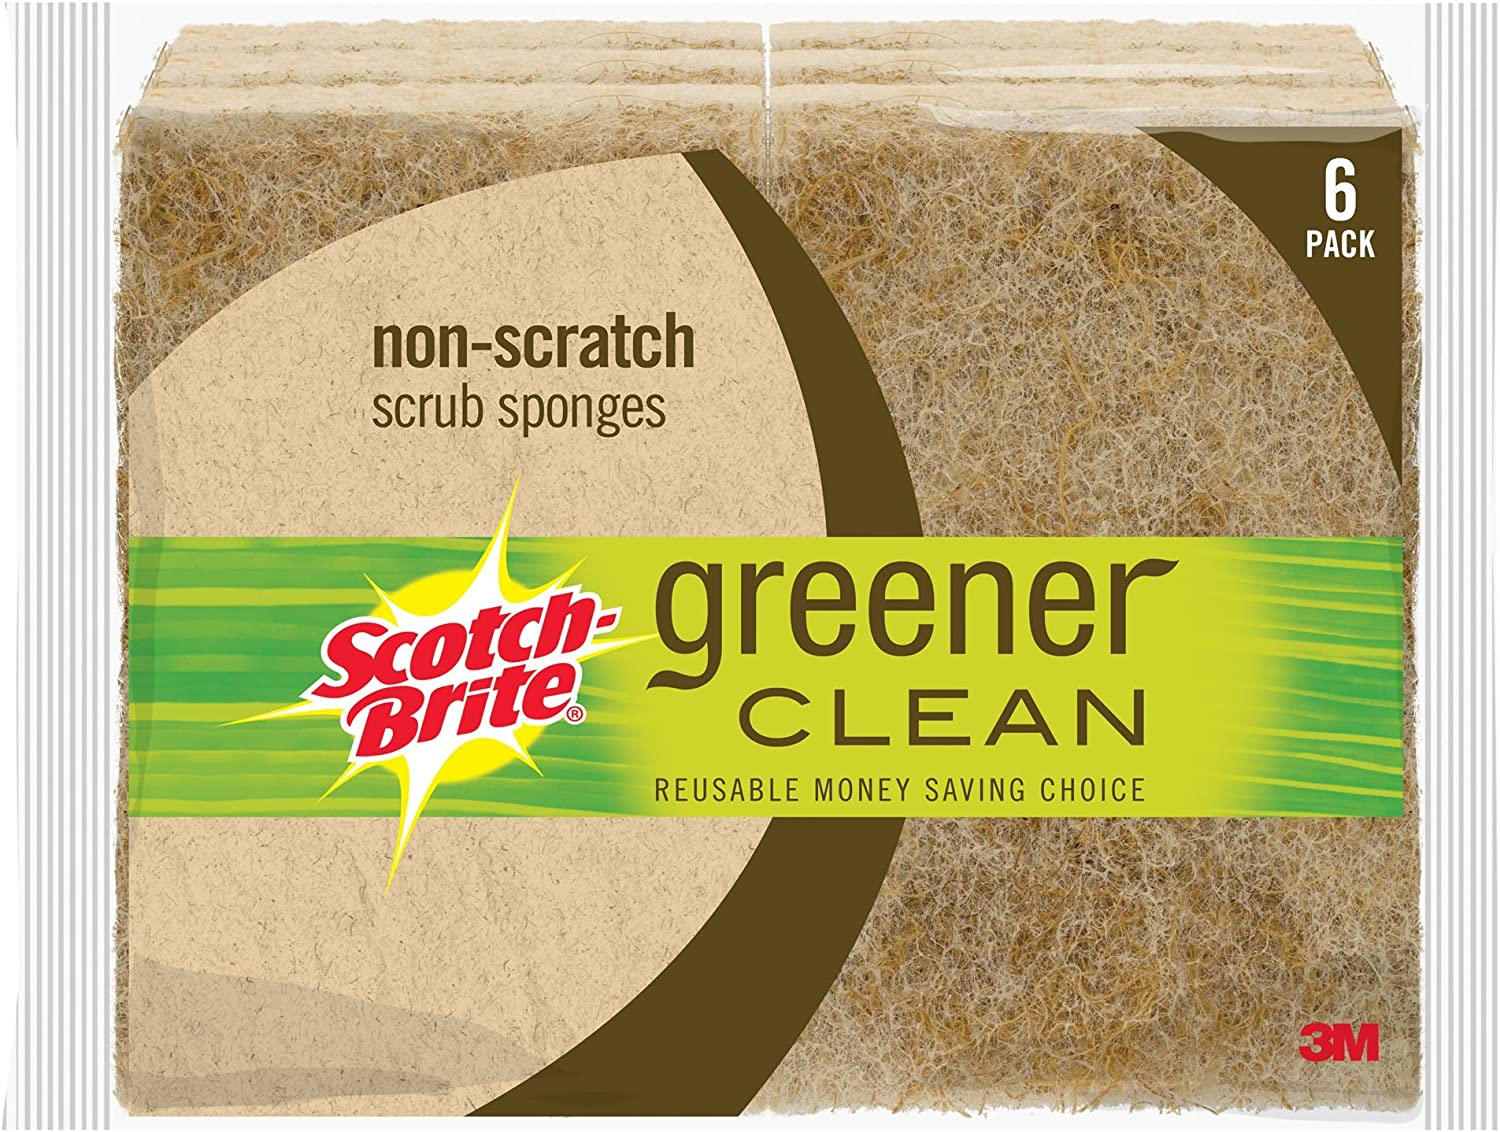 Scotch-Brite Greener Clean Natural Fiber Non-Scratch Scrub Sponge, 6 Scrub Sponges